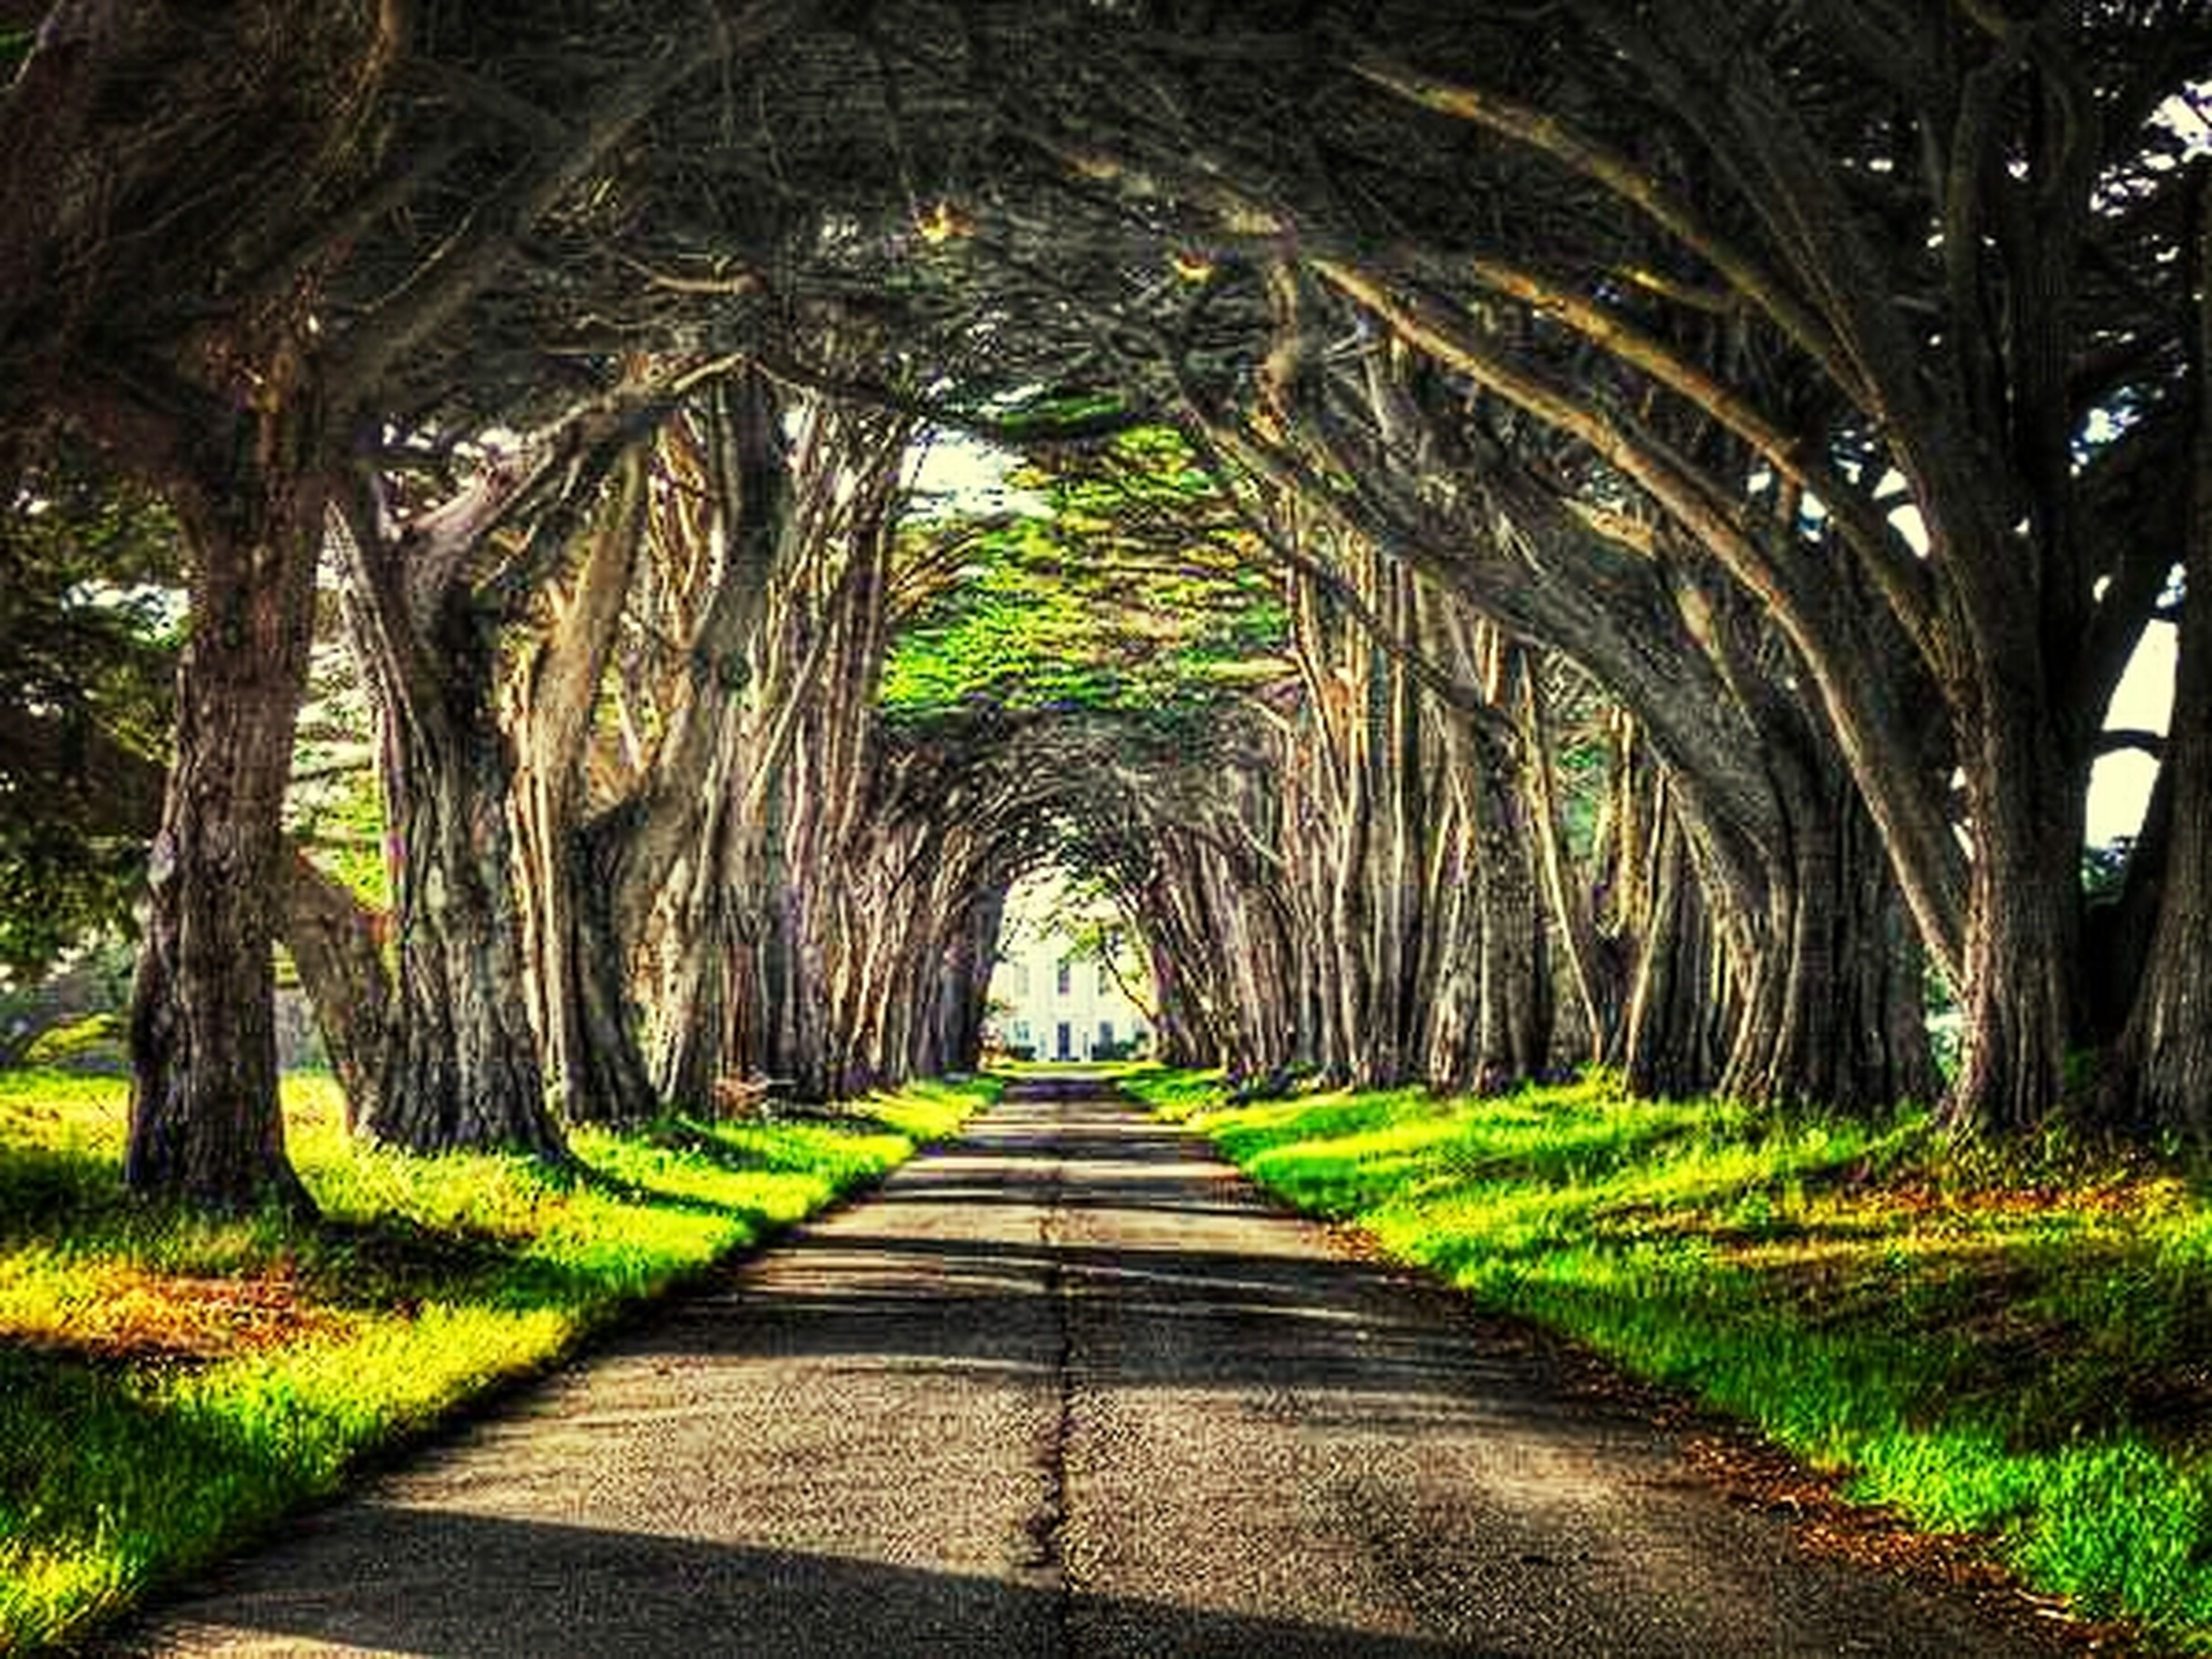 the way forward, tree, diminishing perspective, green color, vanishing point, growth, footpath, grass, tranquility, nature, tree trunk, walkway, treelined, pathway, park - man made space, narrow, branch, long, sunlight, tranquil scene